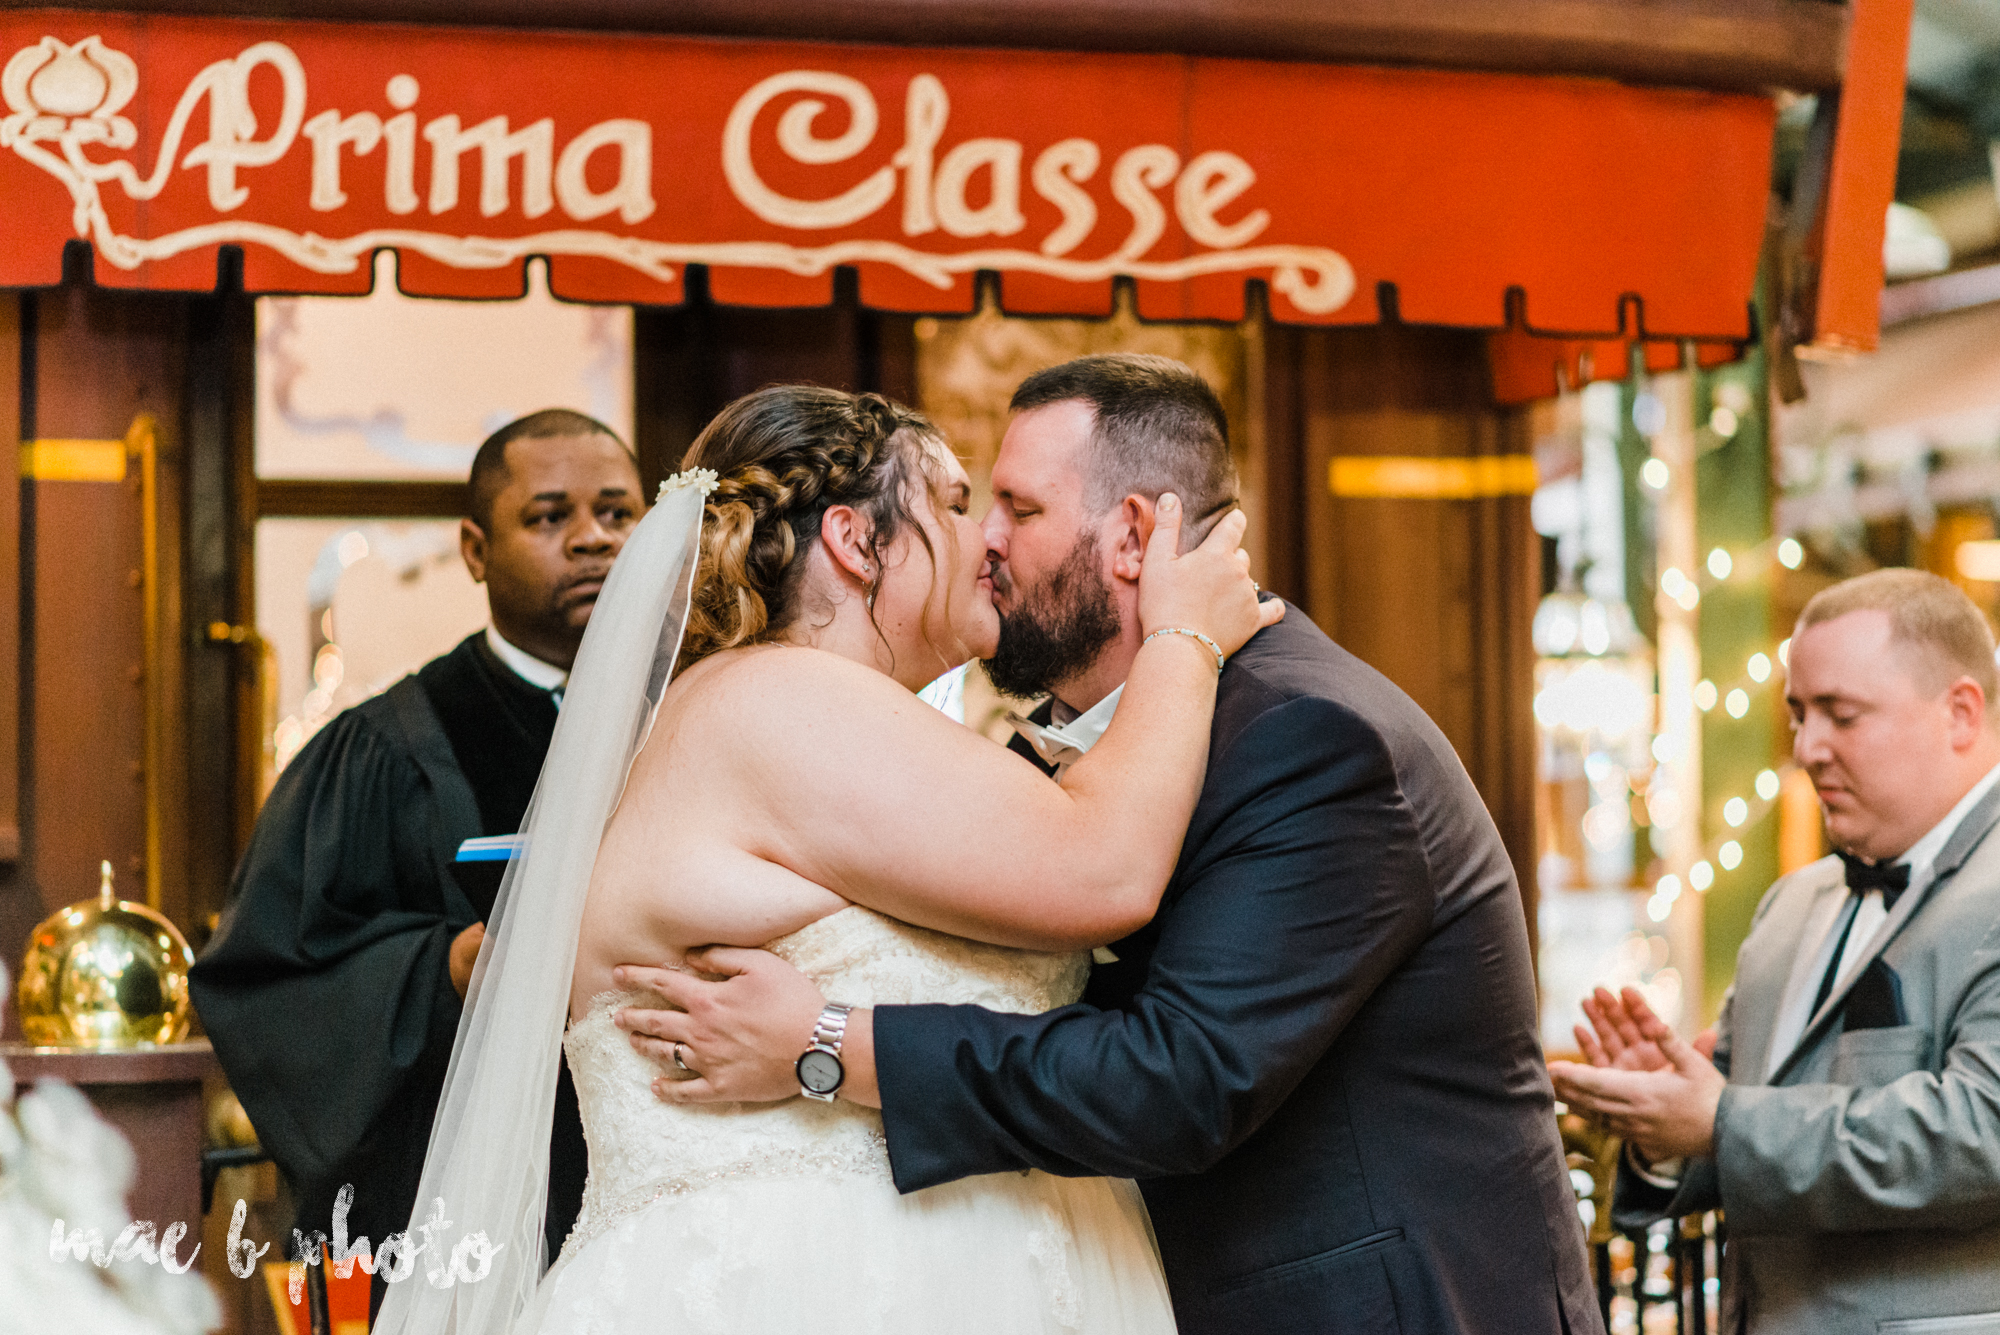 Kristina and ryan's personal vintage glam fall wedding at disalvo's station restaurant and the arnold palmer latrobe country club in latrobe, pa photographed by youngstown wedding photographer mae b photo-63.jpg